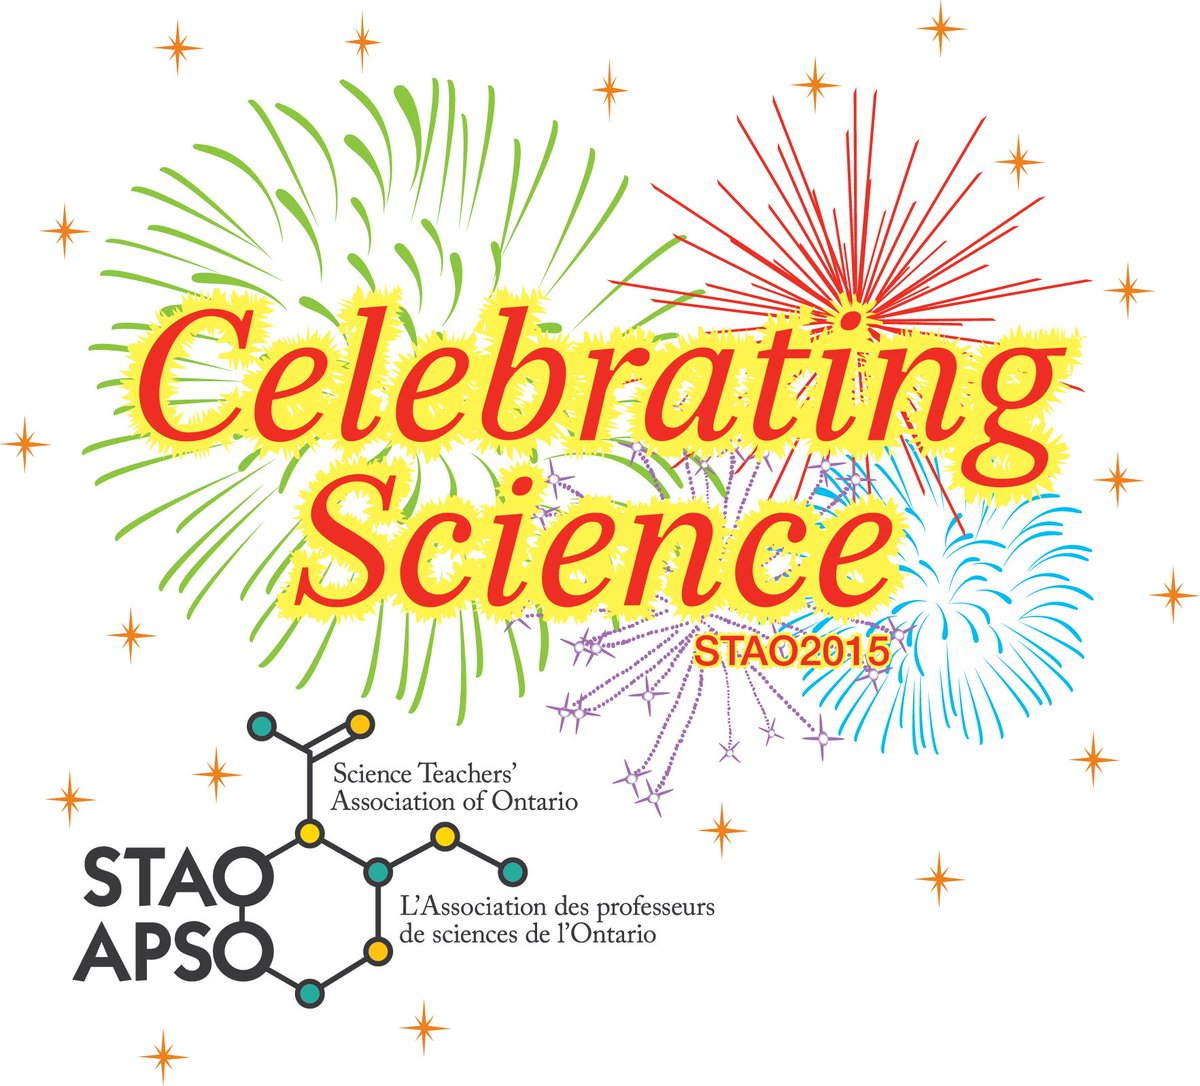 The countdown is on: 9 days to #STAO2015. Check out the list of amazing speakers here https://t.co/VW3LE9xNkH https://t.co/Xn3Uc18IYh